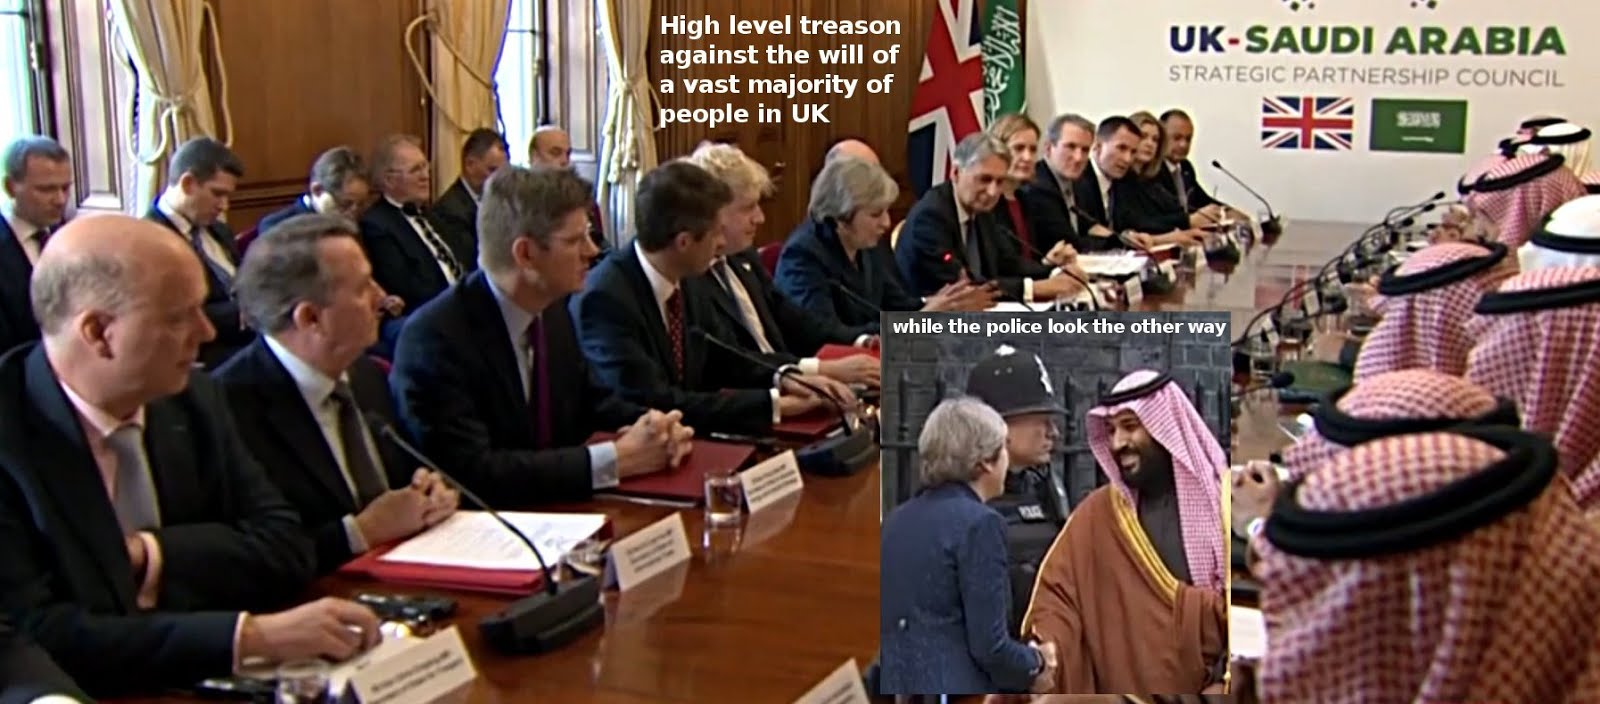 Welcoming UK's main security threat - and committing treason against the will of the people